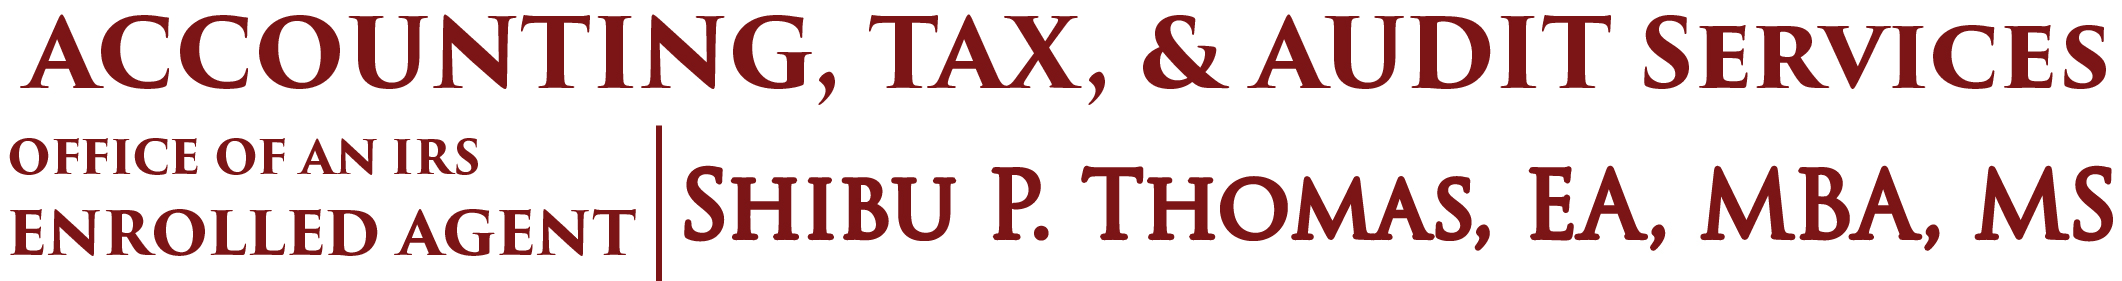 Staten Island, NY Accounting Firm | Refund Status Page | Accounting, Tax, & Audit Services Shibu P. Thomas, EA, MBA, MS